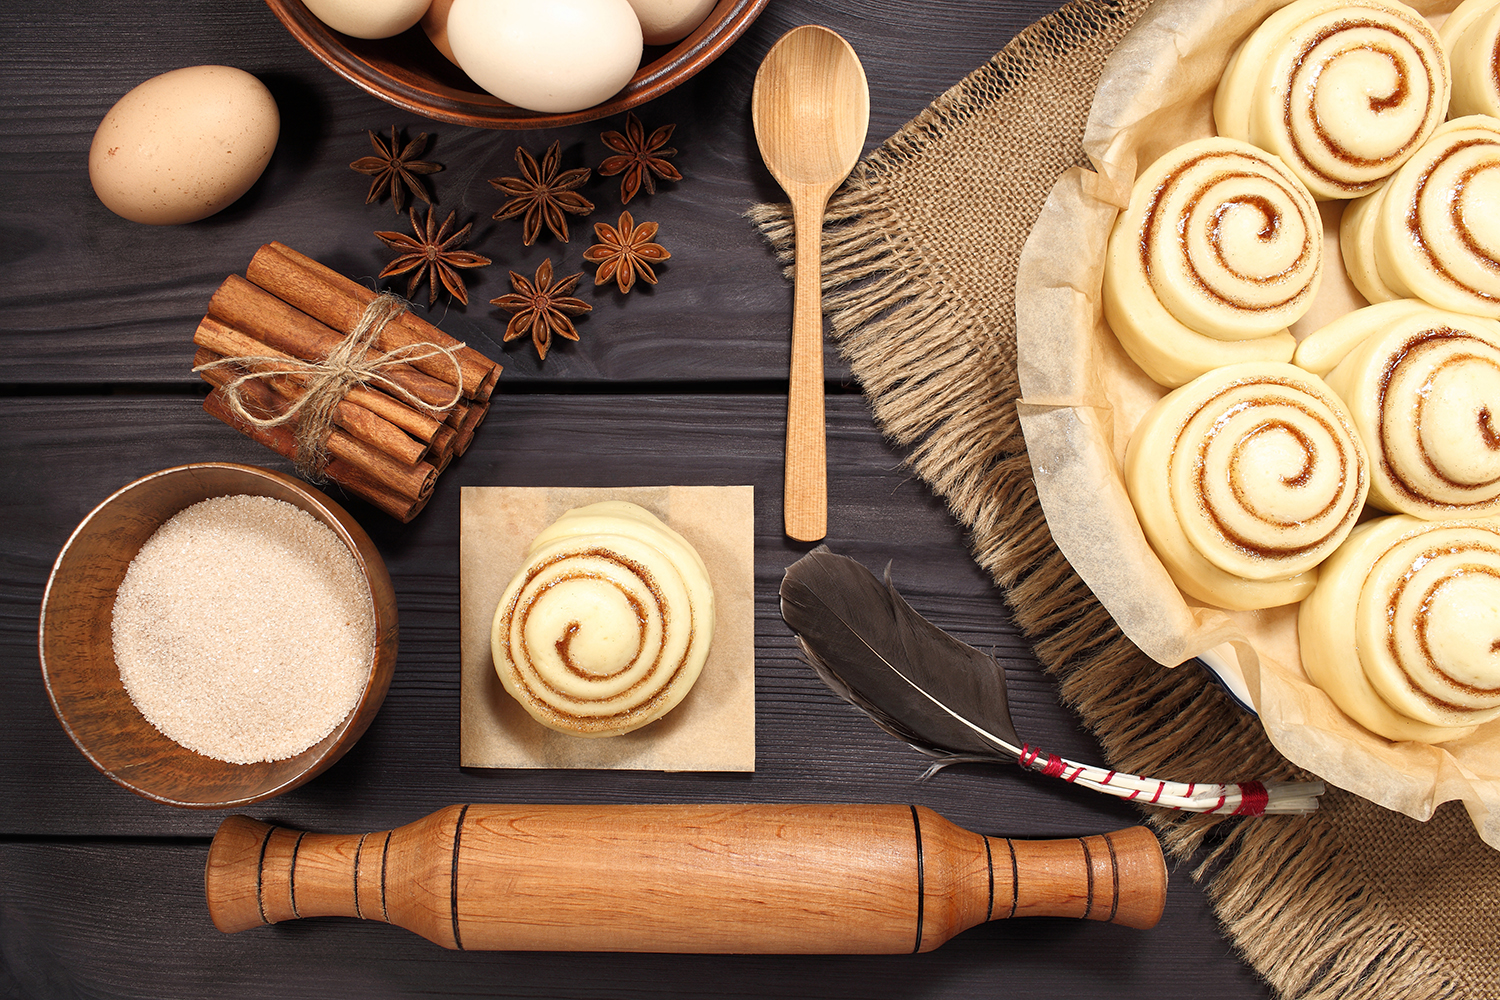 Set of 11 photos - raw buns: cinnamon rolls prepared for baking on a background of rustic table example image 7